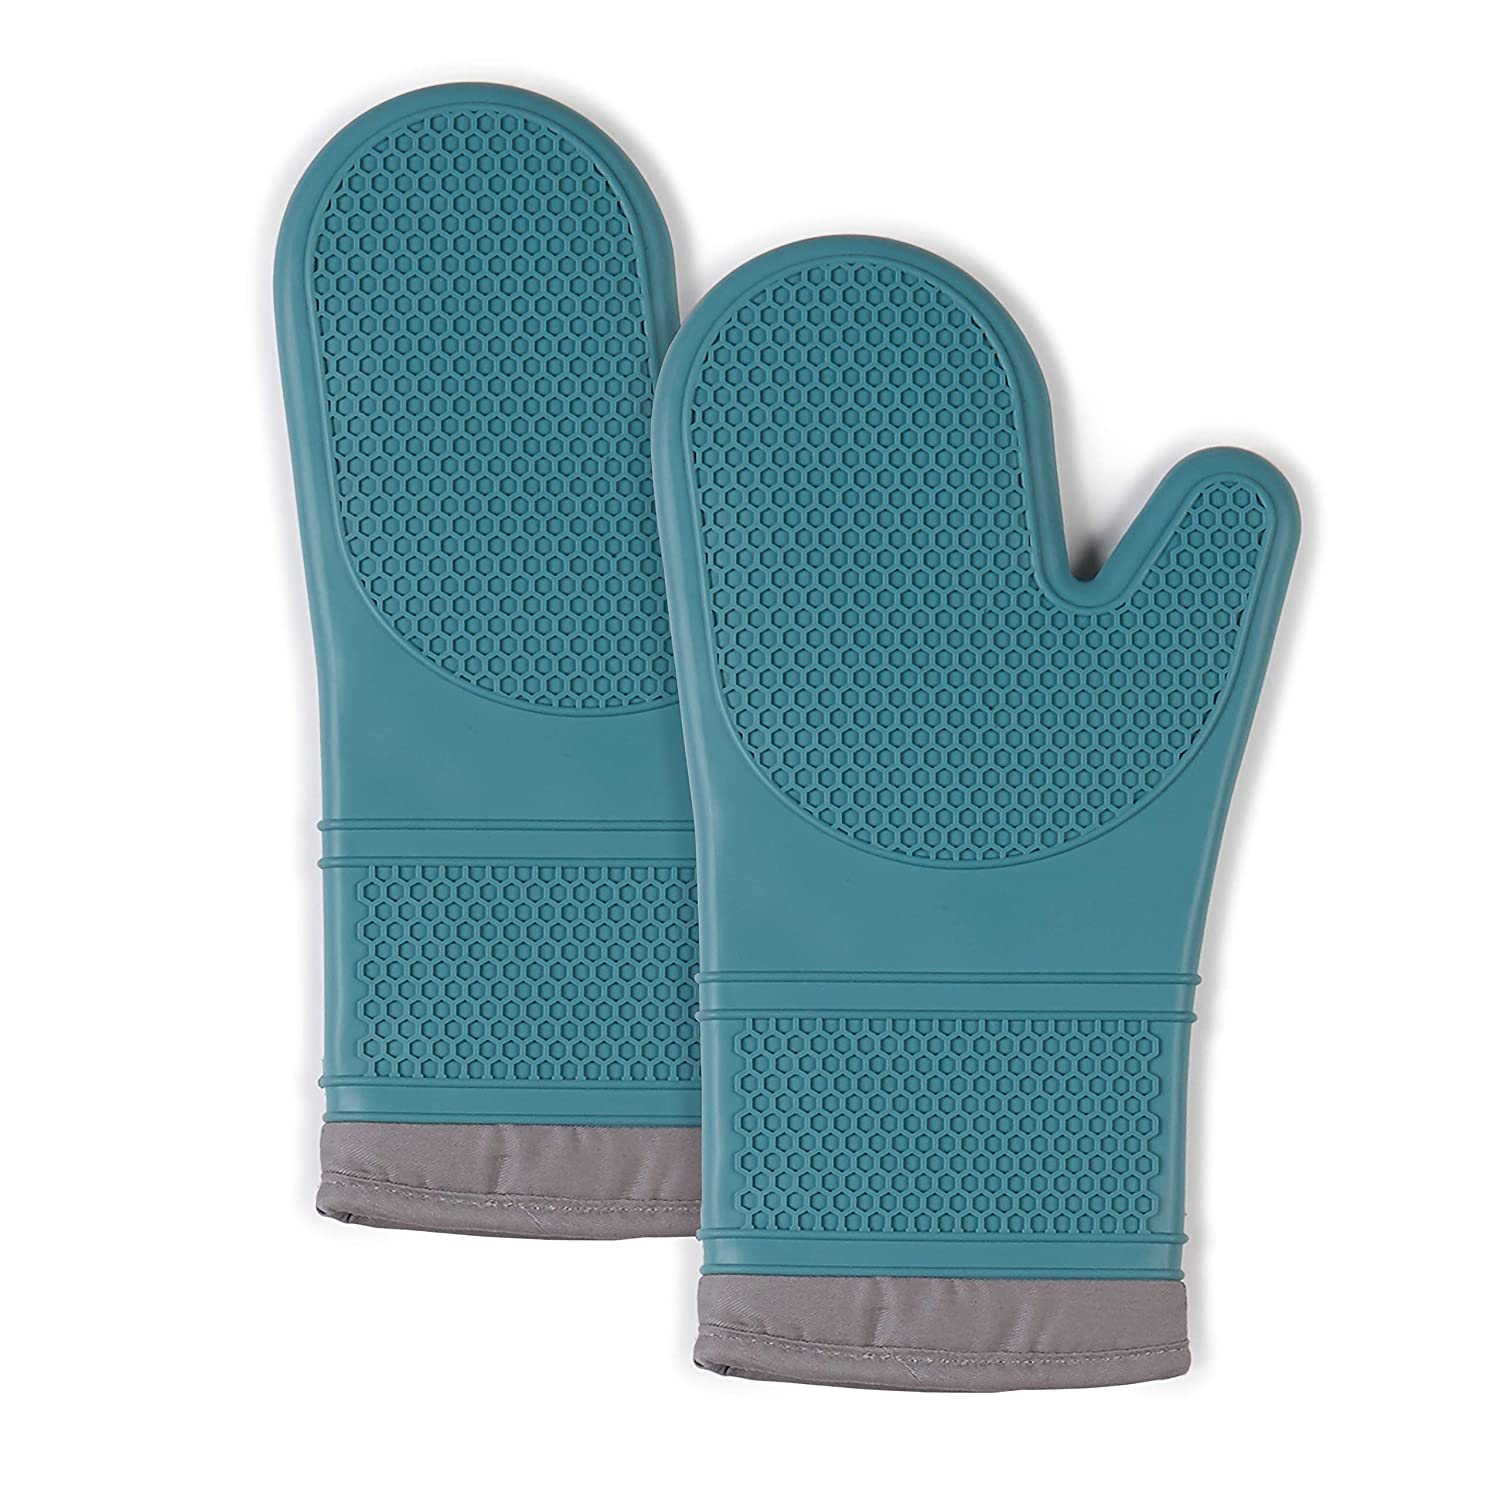 """Town & Country Living Silicone Oven Mitts 7.5""""x13"""" Mitt, Heat Resistant Machine Washable Silicone/Cotton/Polyester 2-Pack, Textured Teal"""